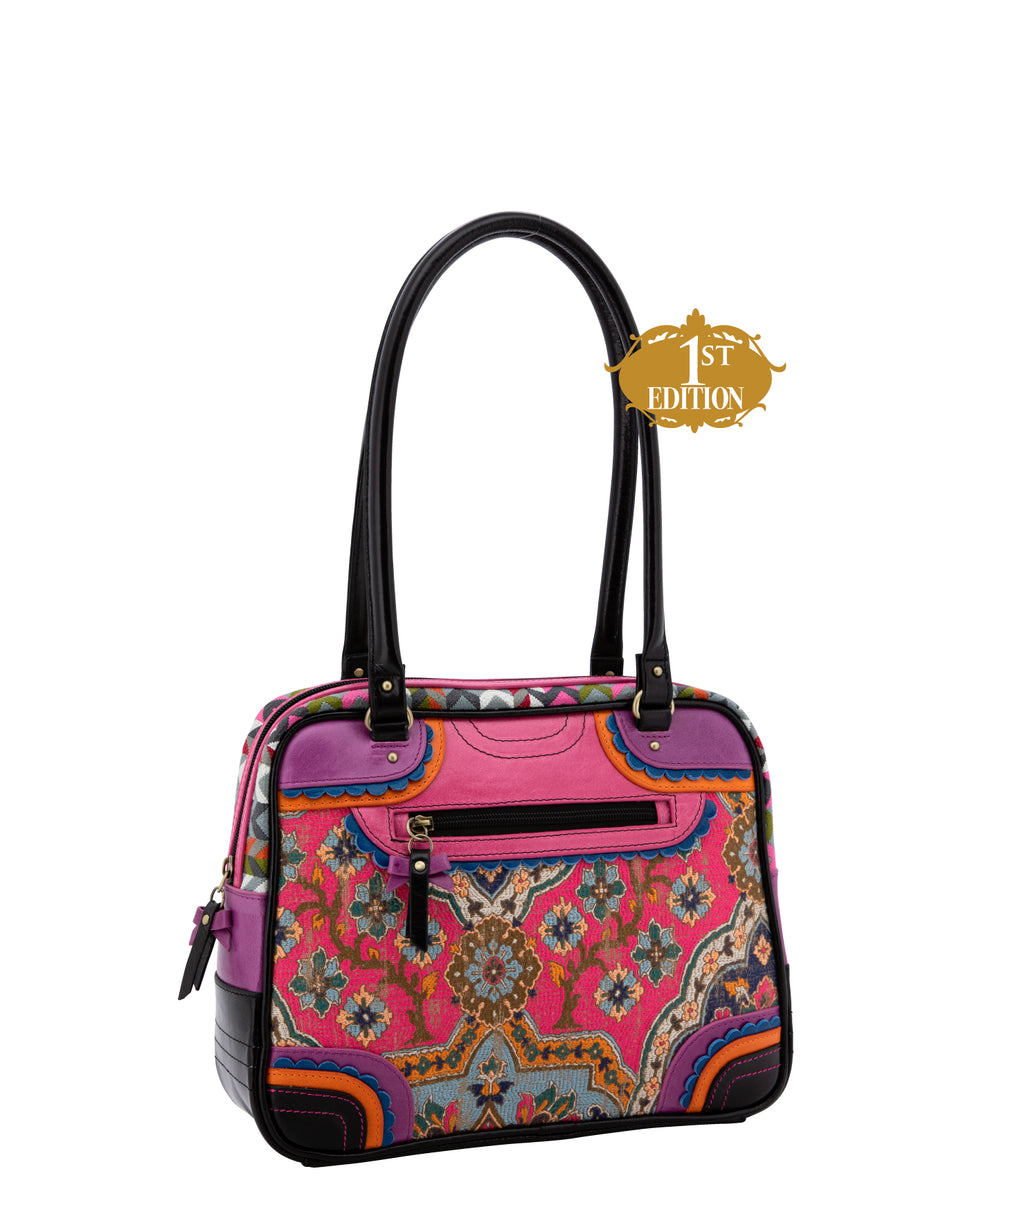 NINA Shoulder Bag - Fiesta - 1st Edition